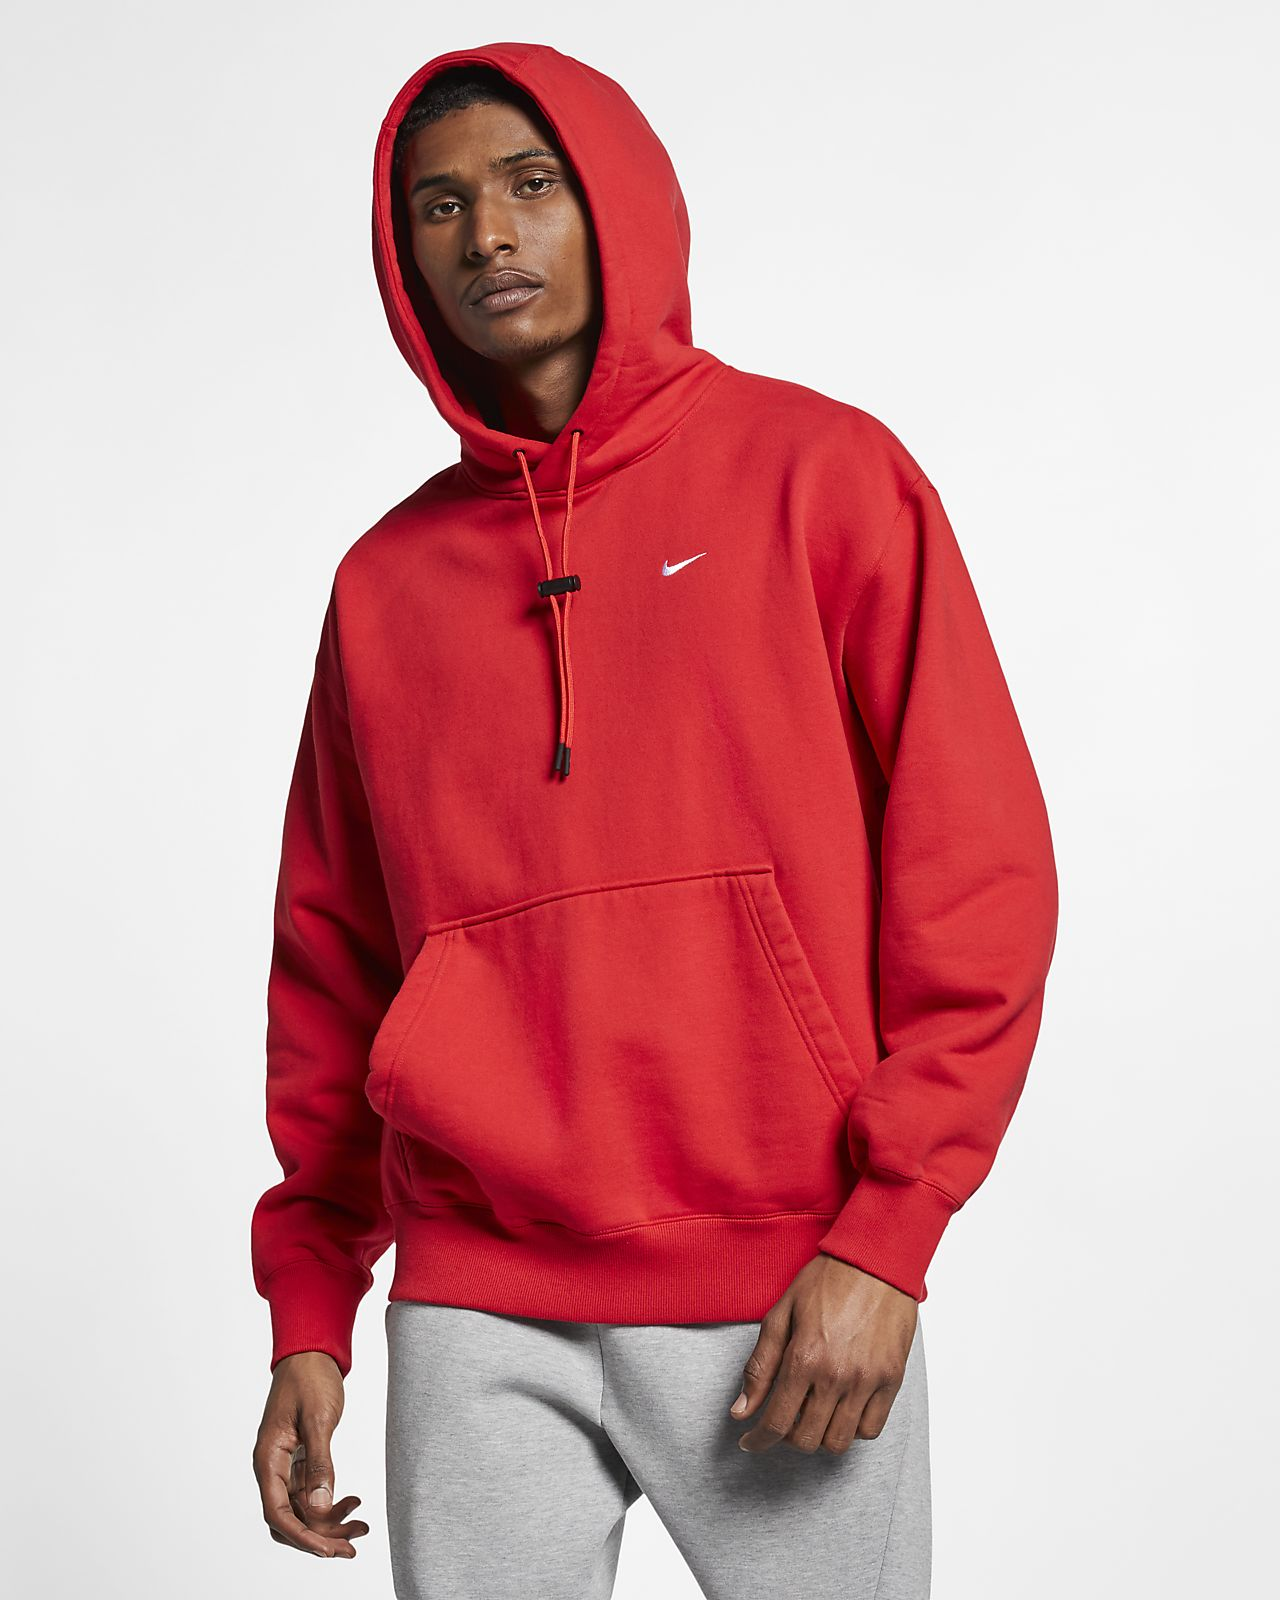 NikeLab Collection Men's Pullover Hoodie